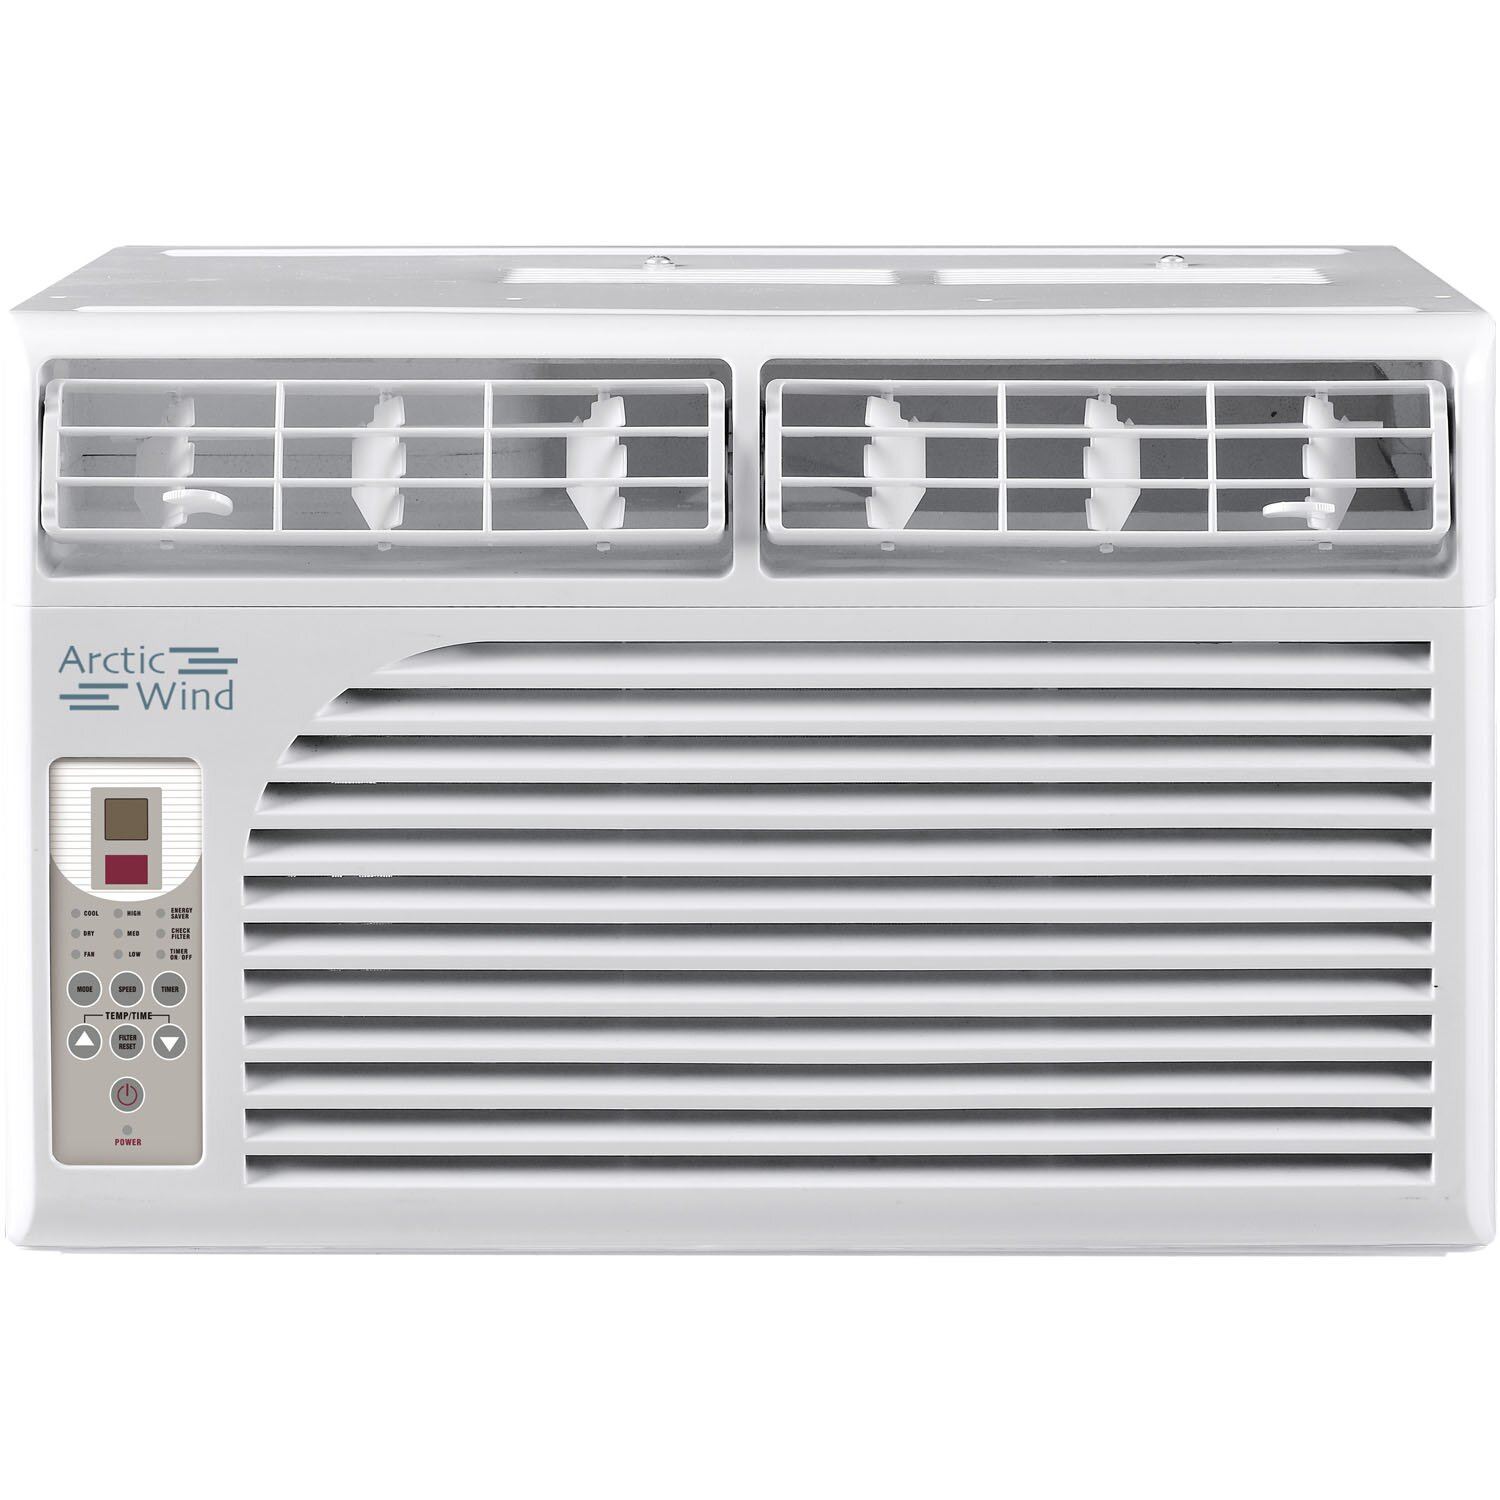 8000 BTU Energy Star Window Air Conditioner with Remote by Arctic Wind #6B5D4B